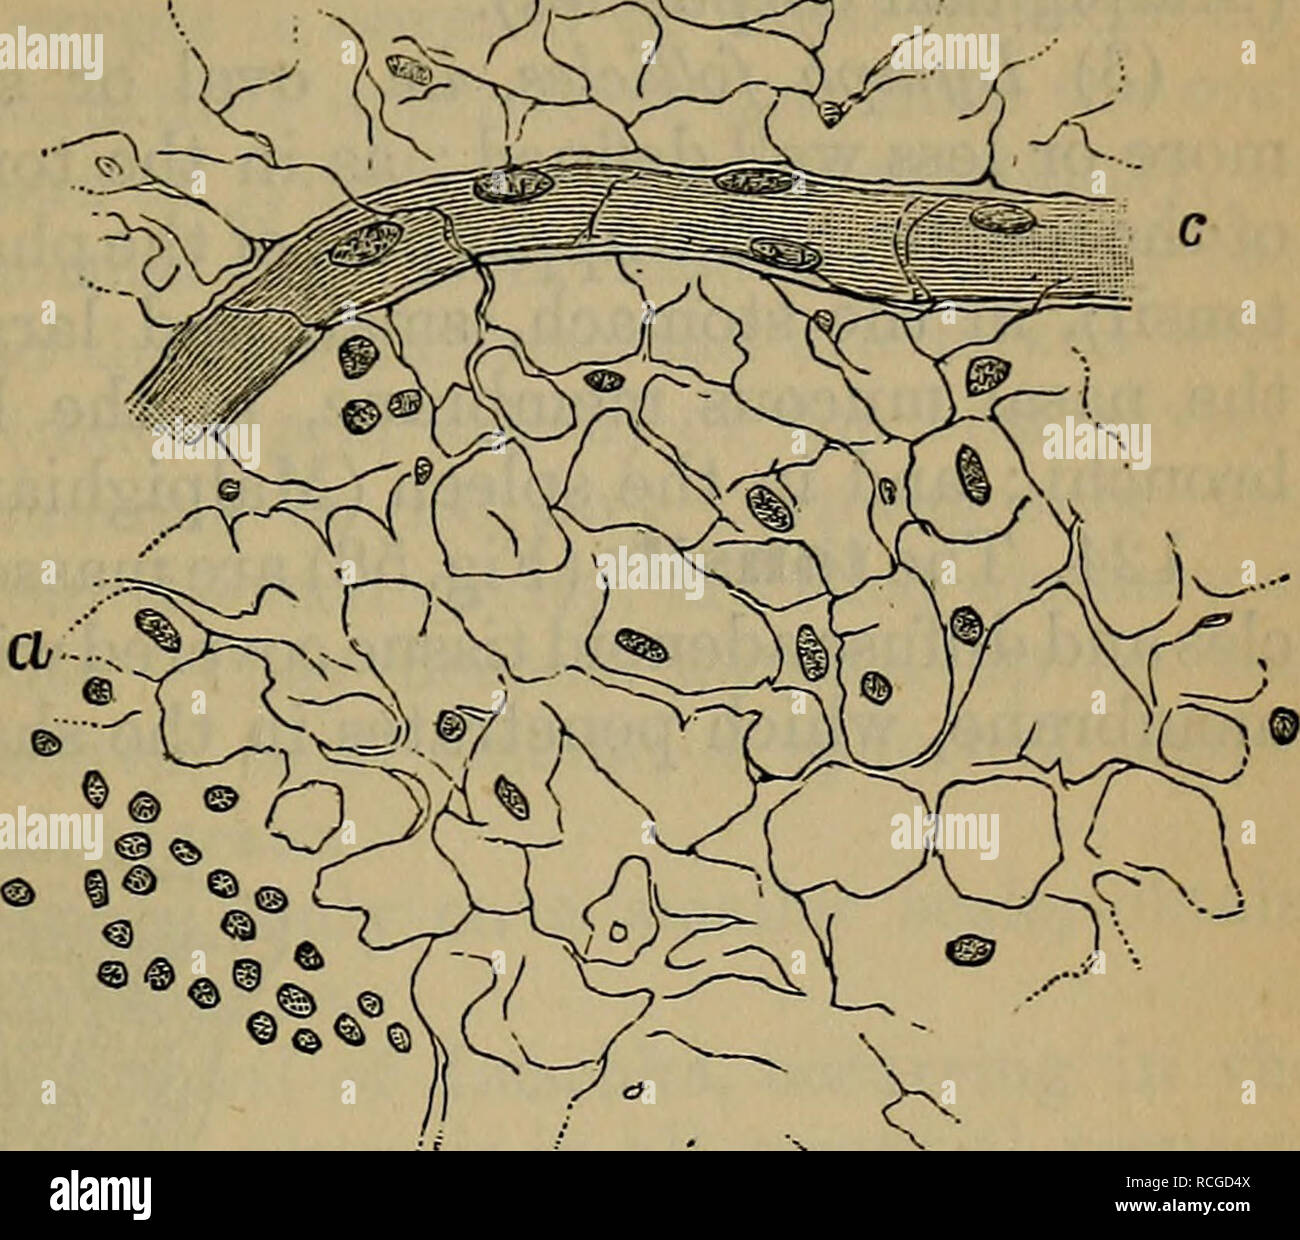 . Elements of histology. Histology. Chap, xii.] Simple Lymphatic Glands. 93 ^cMV.. (c) Lymph-corpuscles completely fill the meshes of the adenoid reticulum. These can be easily shaken out of the reticulum. They are of dif- ferent sizes; some — the young ones— are small cells, with a com- paratively large nucleus; others — the ripe ones—are larger, have a distinct pro- toplasmic cell body, with one or two nuclei. They all show on a warm stage amoe- boid move- ment, but in the large ones it is much more pronounced than in the small ones. The capillary blood-vessels supplying the adenoid tissue r - Stock Image